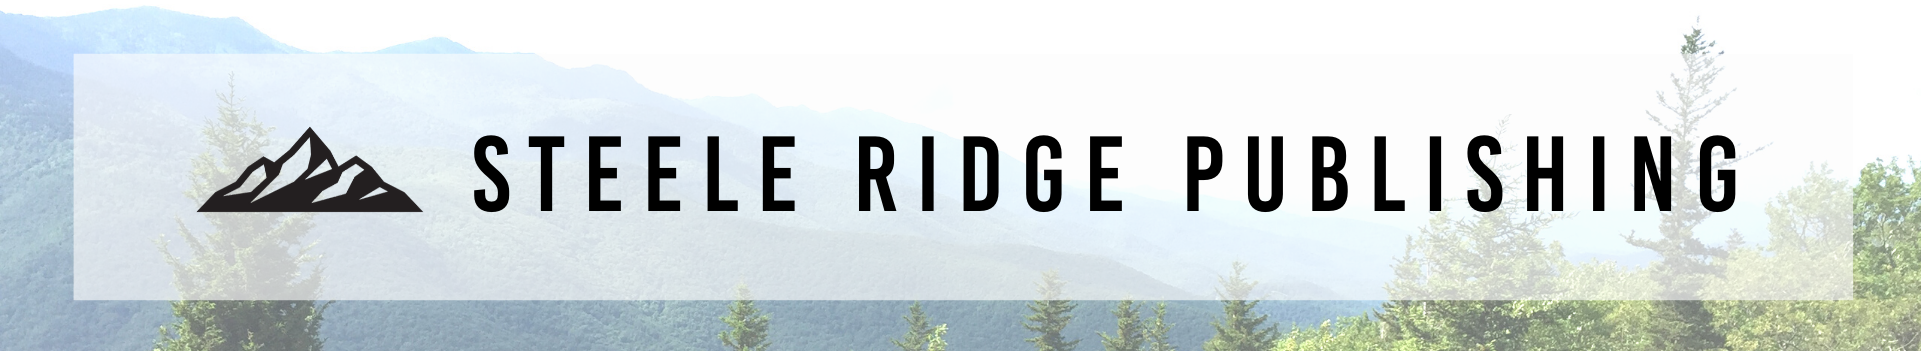 Banner with Steele Ridge Publishing and mountain logo